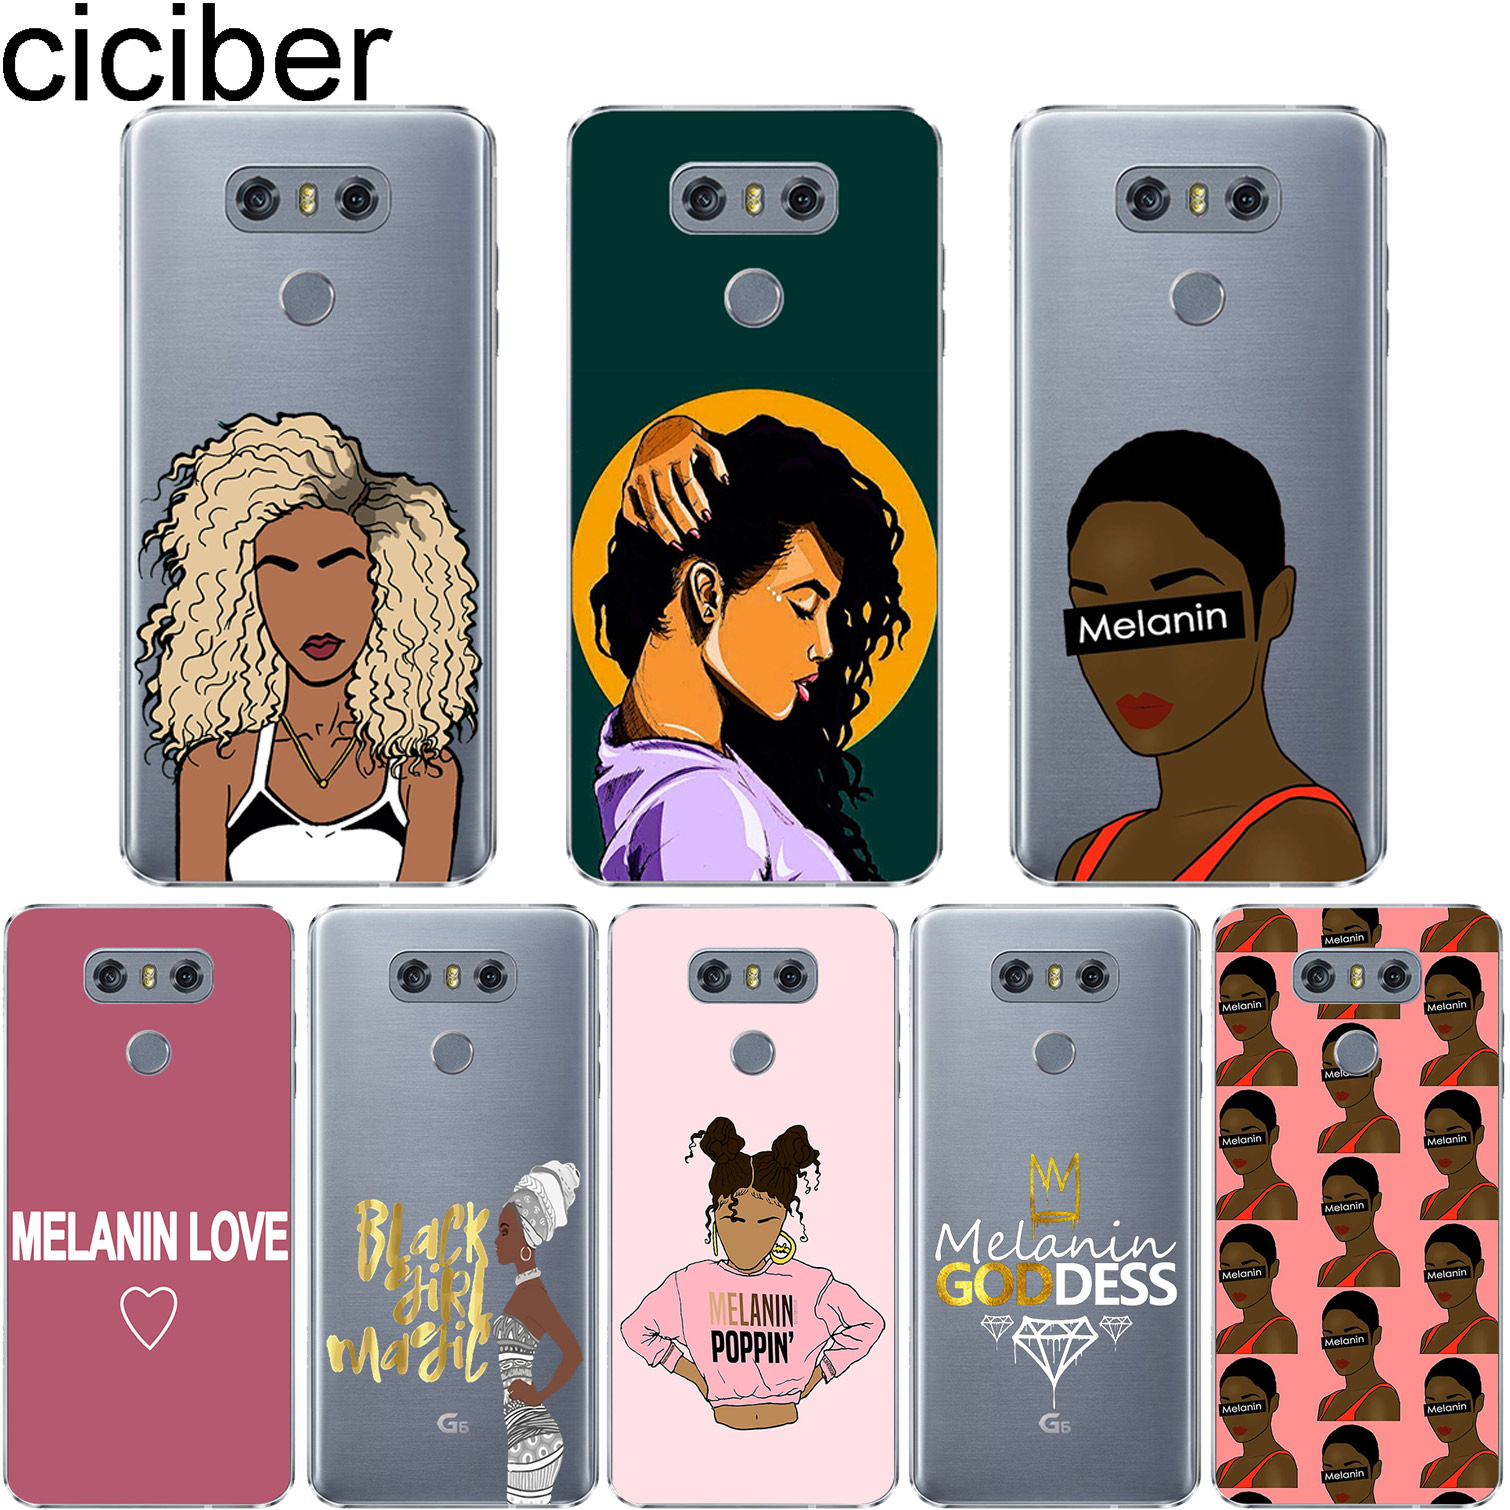 Analytical Ciciber Phone Case For Lg G6 G7 G5 G4 V30 V35 V40 V20 Thinq Soft Tpu For Lg K10 K8 K7 K4 K9 K11 Cellphones & Telecommunications Phone Bags & Cases 2017 2018 Cover Melanin Poppin For Fast Shipping